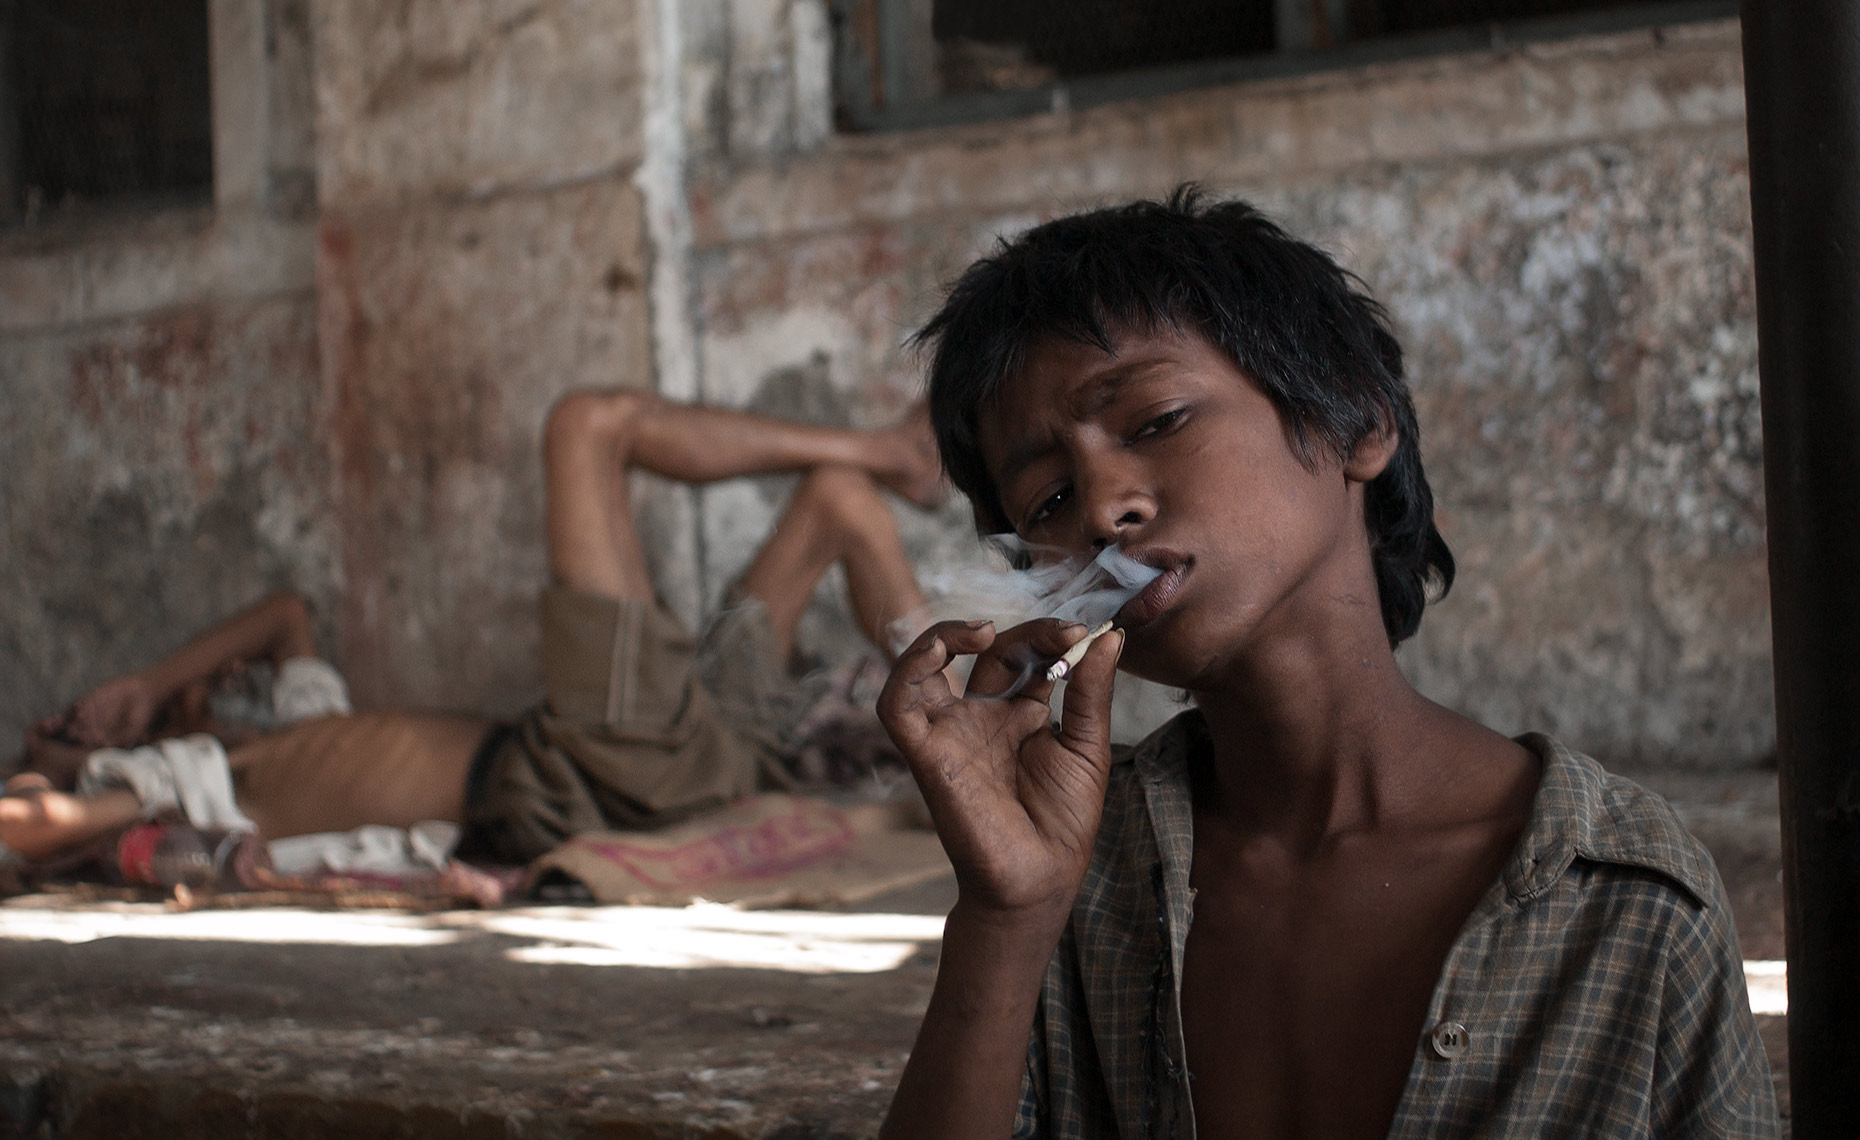 kid_smoking_bidi mumbai india